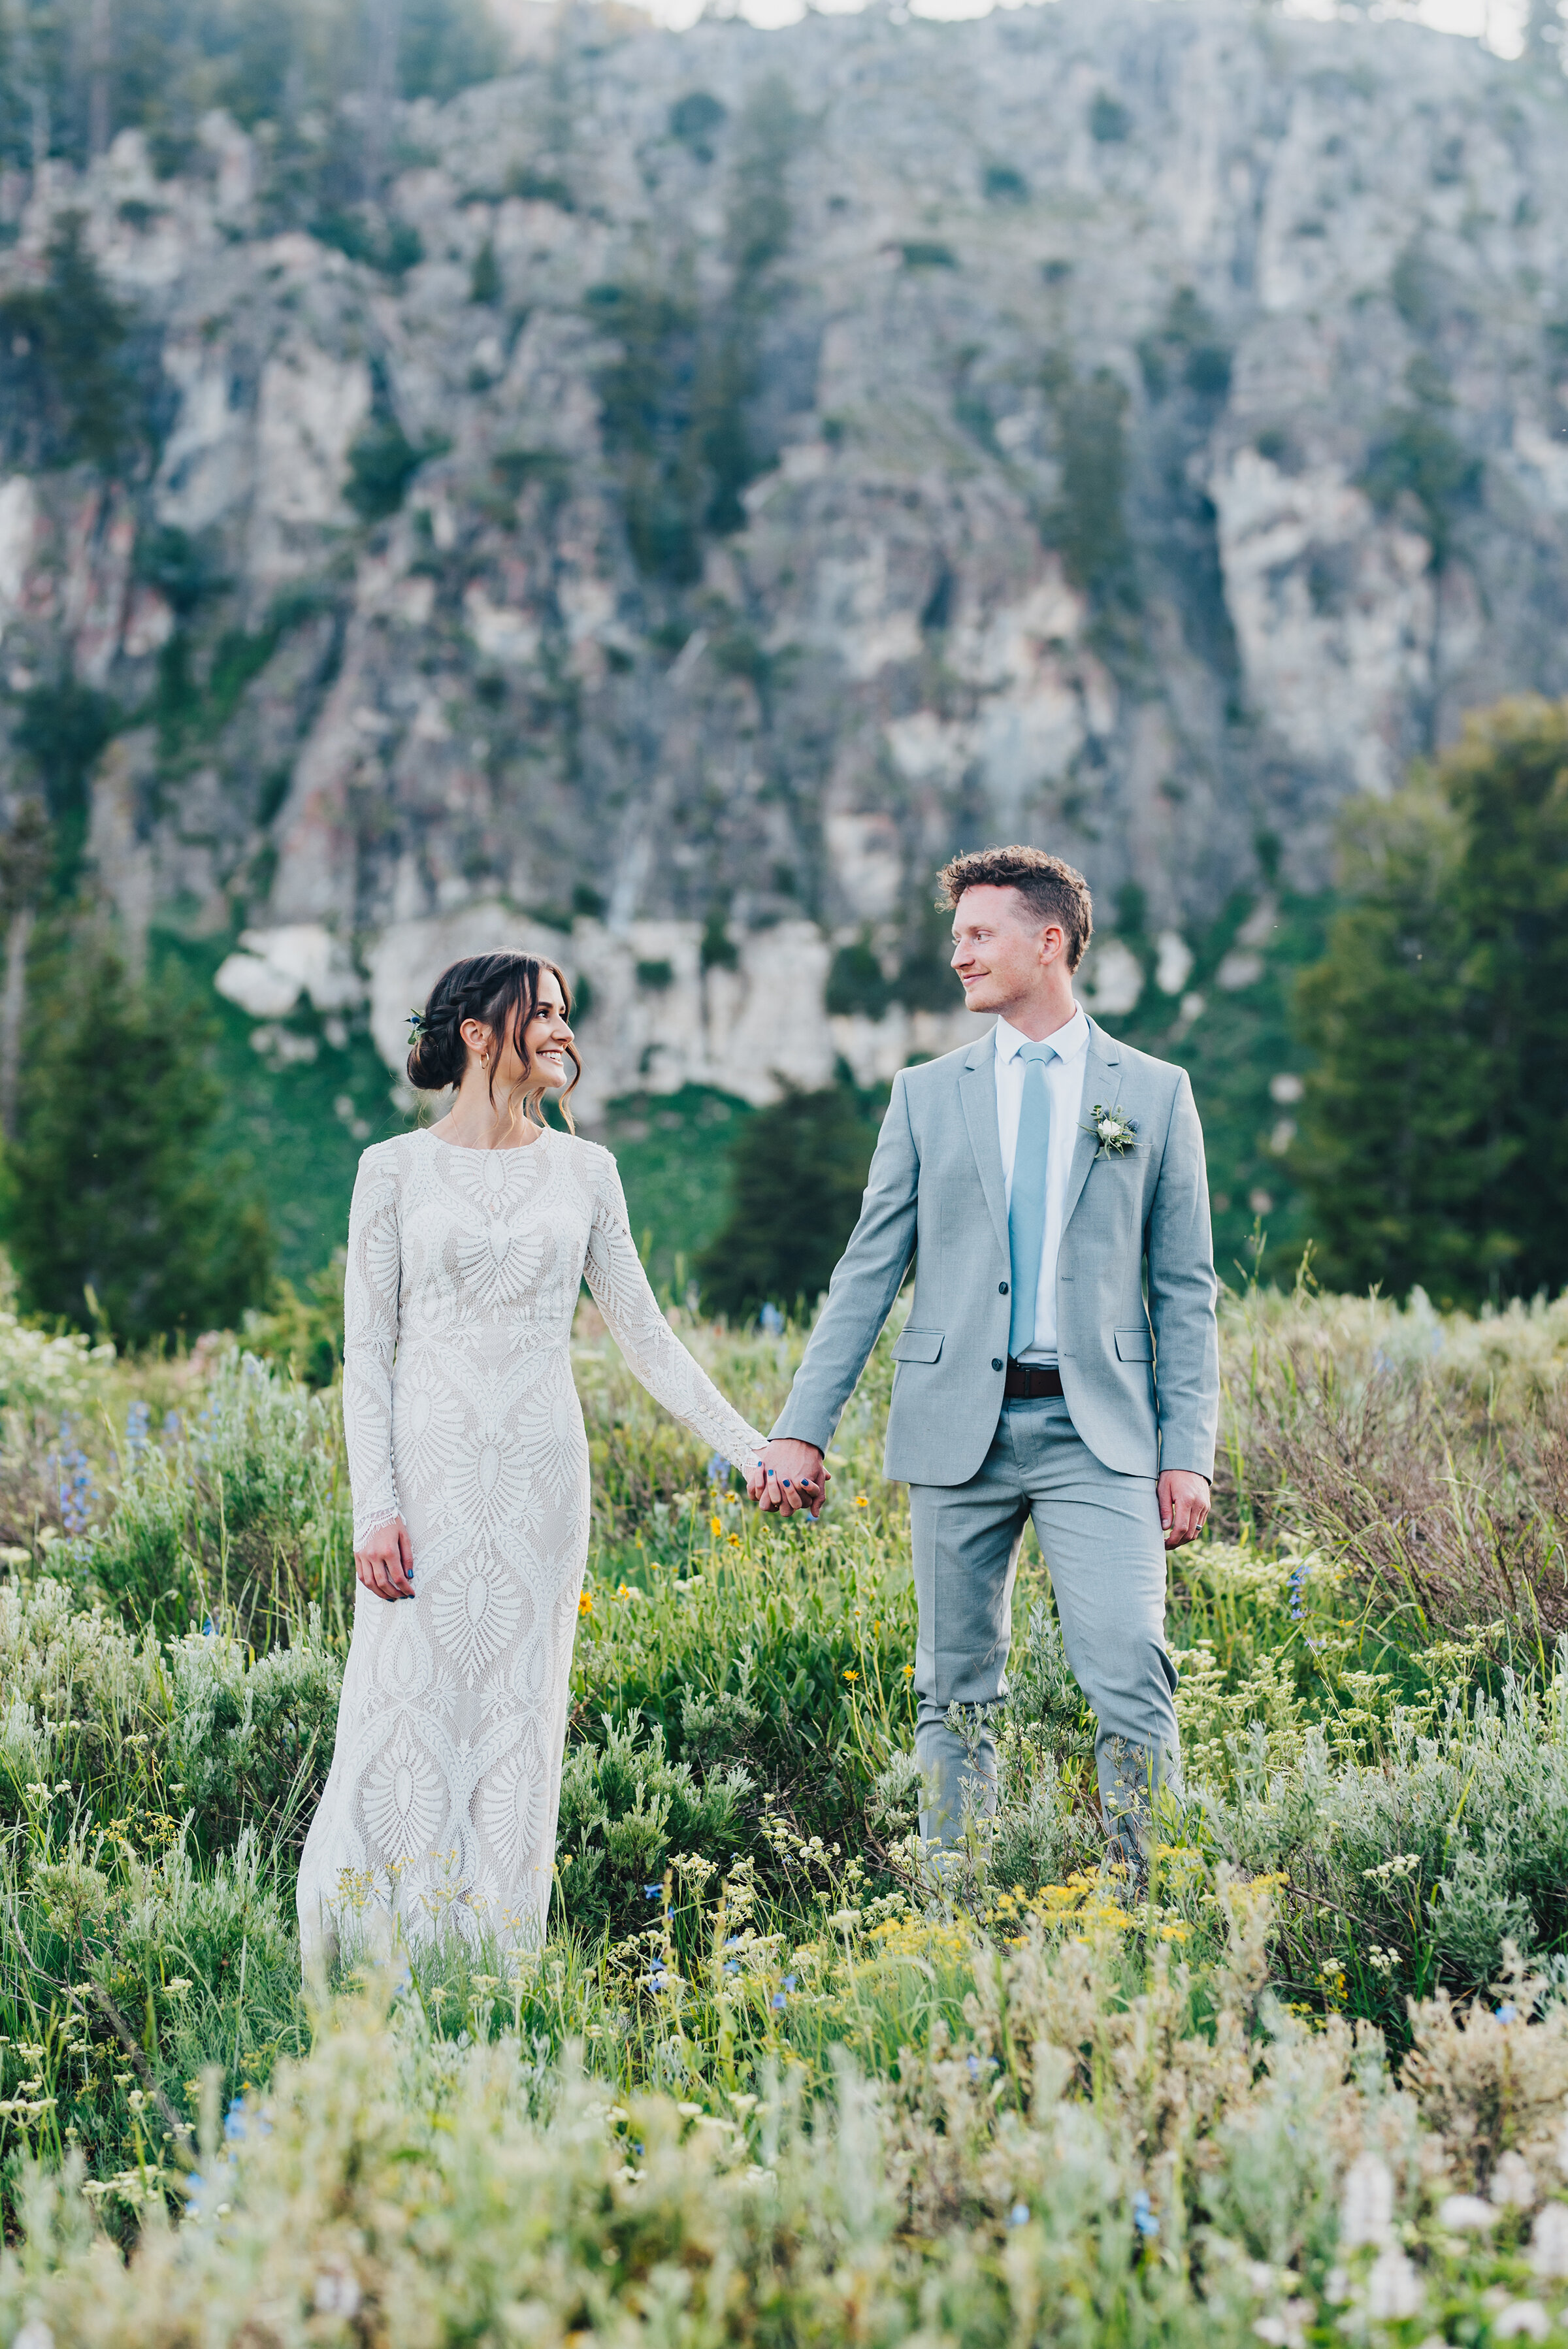 Two lovers holding hands in a meadow during their formals up Logan canyon at Tony Grove. Kristi Alyse photography Logan Utah wedding photographer forest nature dreamy formals Logan canyon Tony Grove scenic bridals Northern Utah photographer Utah brides bride and groom Cache Valley #kristialysephotography #loganutahphotographer #tonygrove #logancanyon #utahweddingphotographer #bridals #formals #wildflowers #northernutah #utahbrides